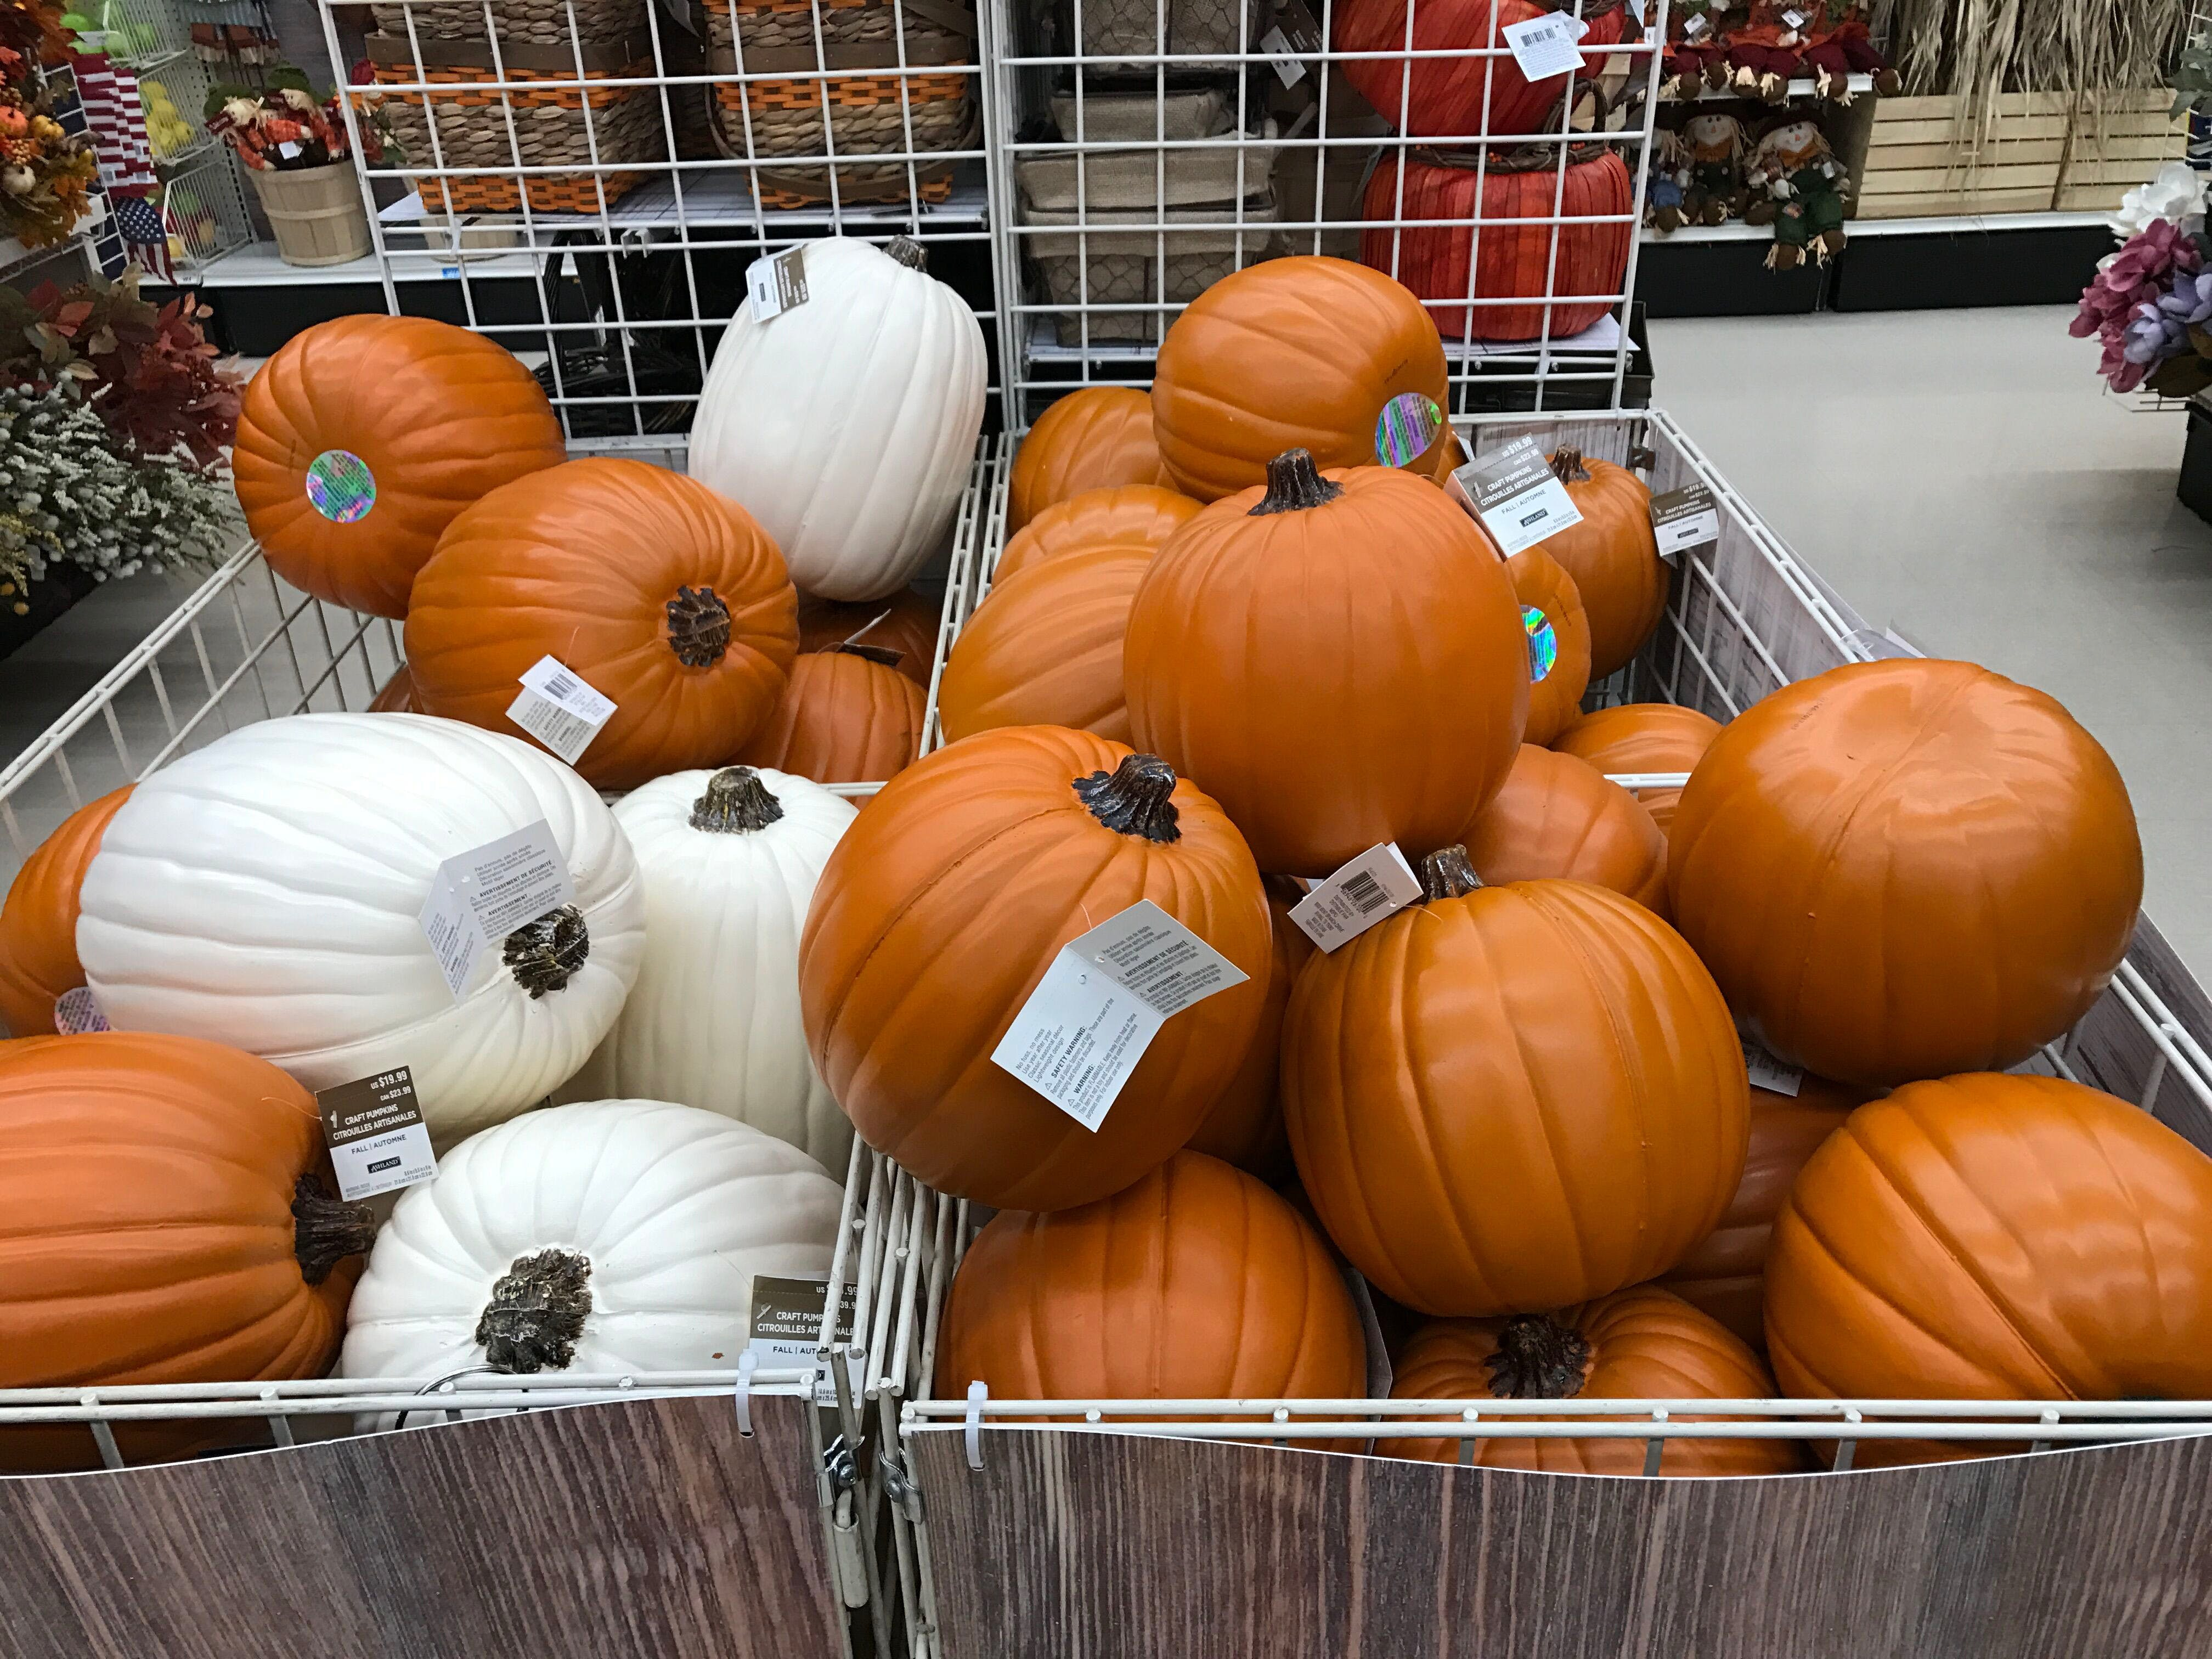 Craft Pumpkins As Low As 4 At Michaels The Krazy Coupon Lady